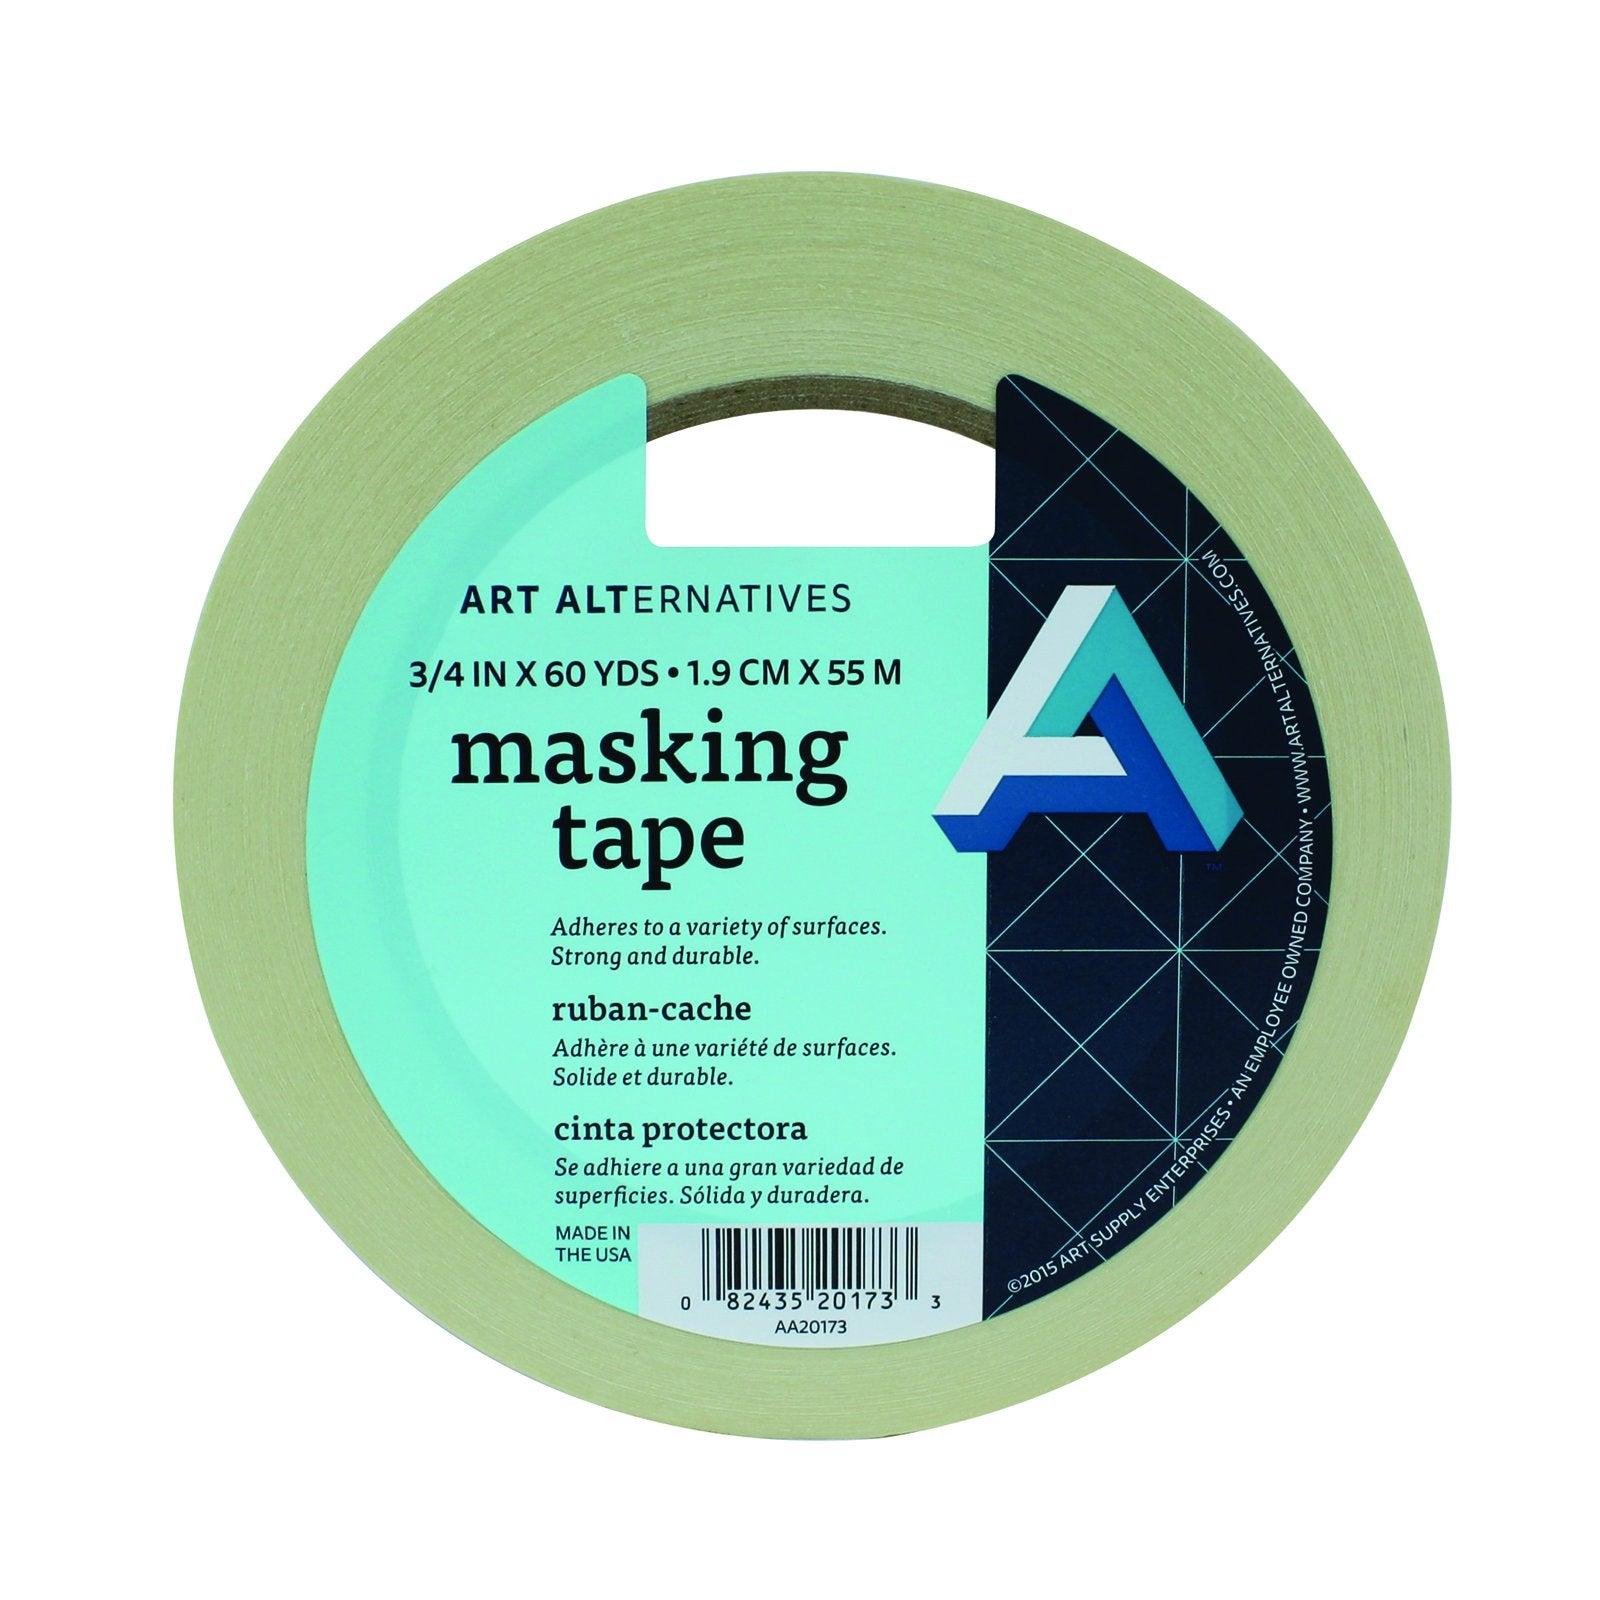 "Art Alternatives Masking Tape 3/4"" x 60 yds."